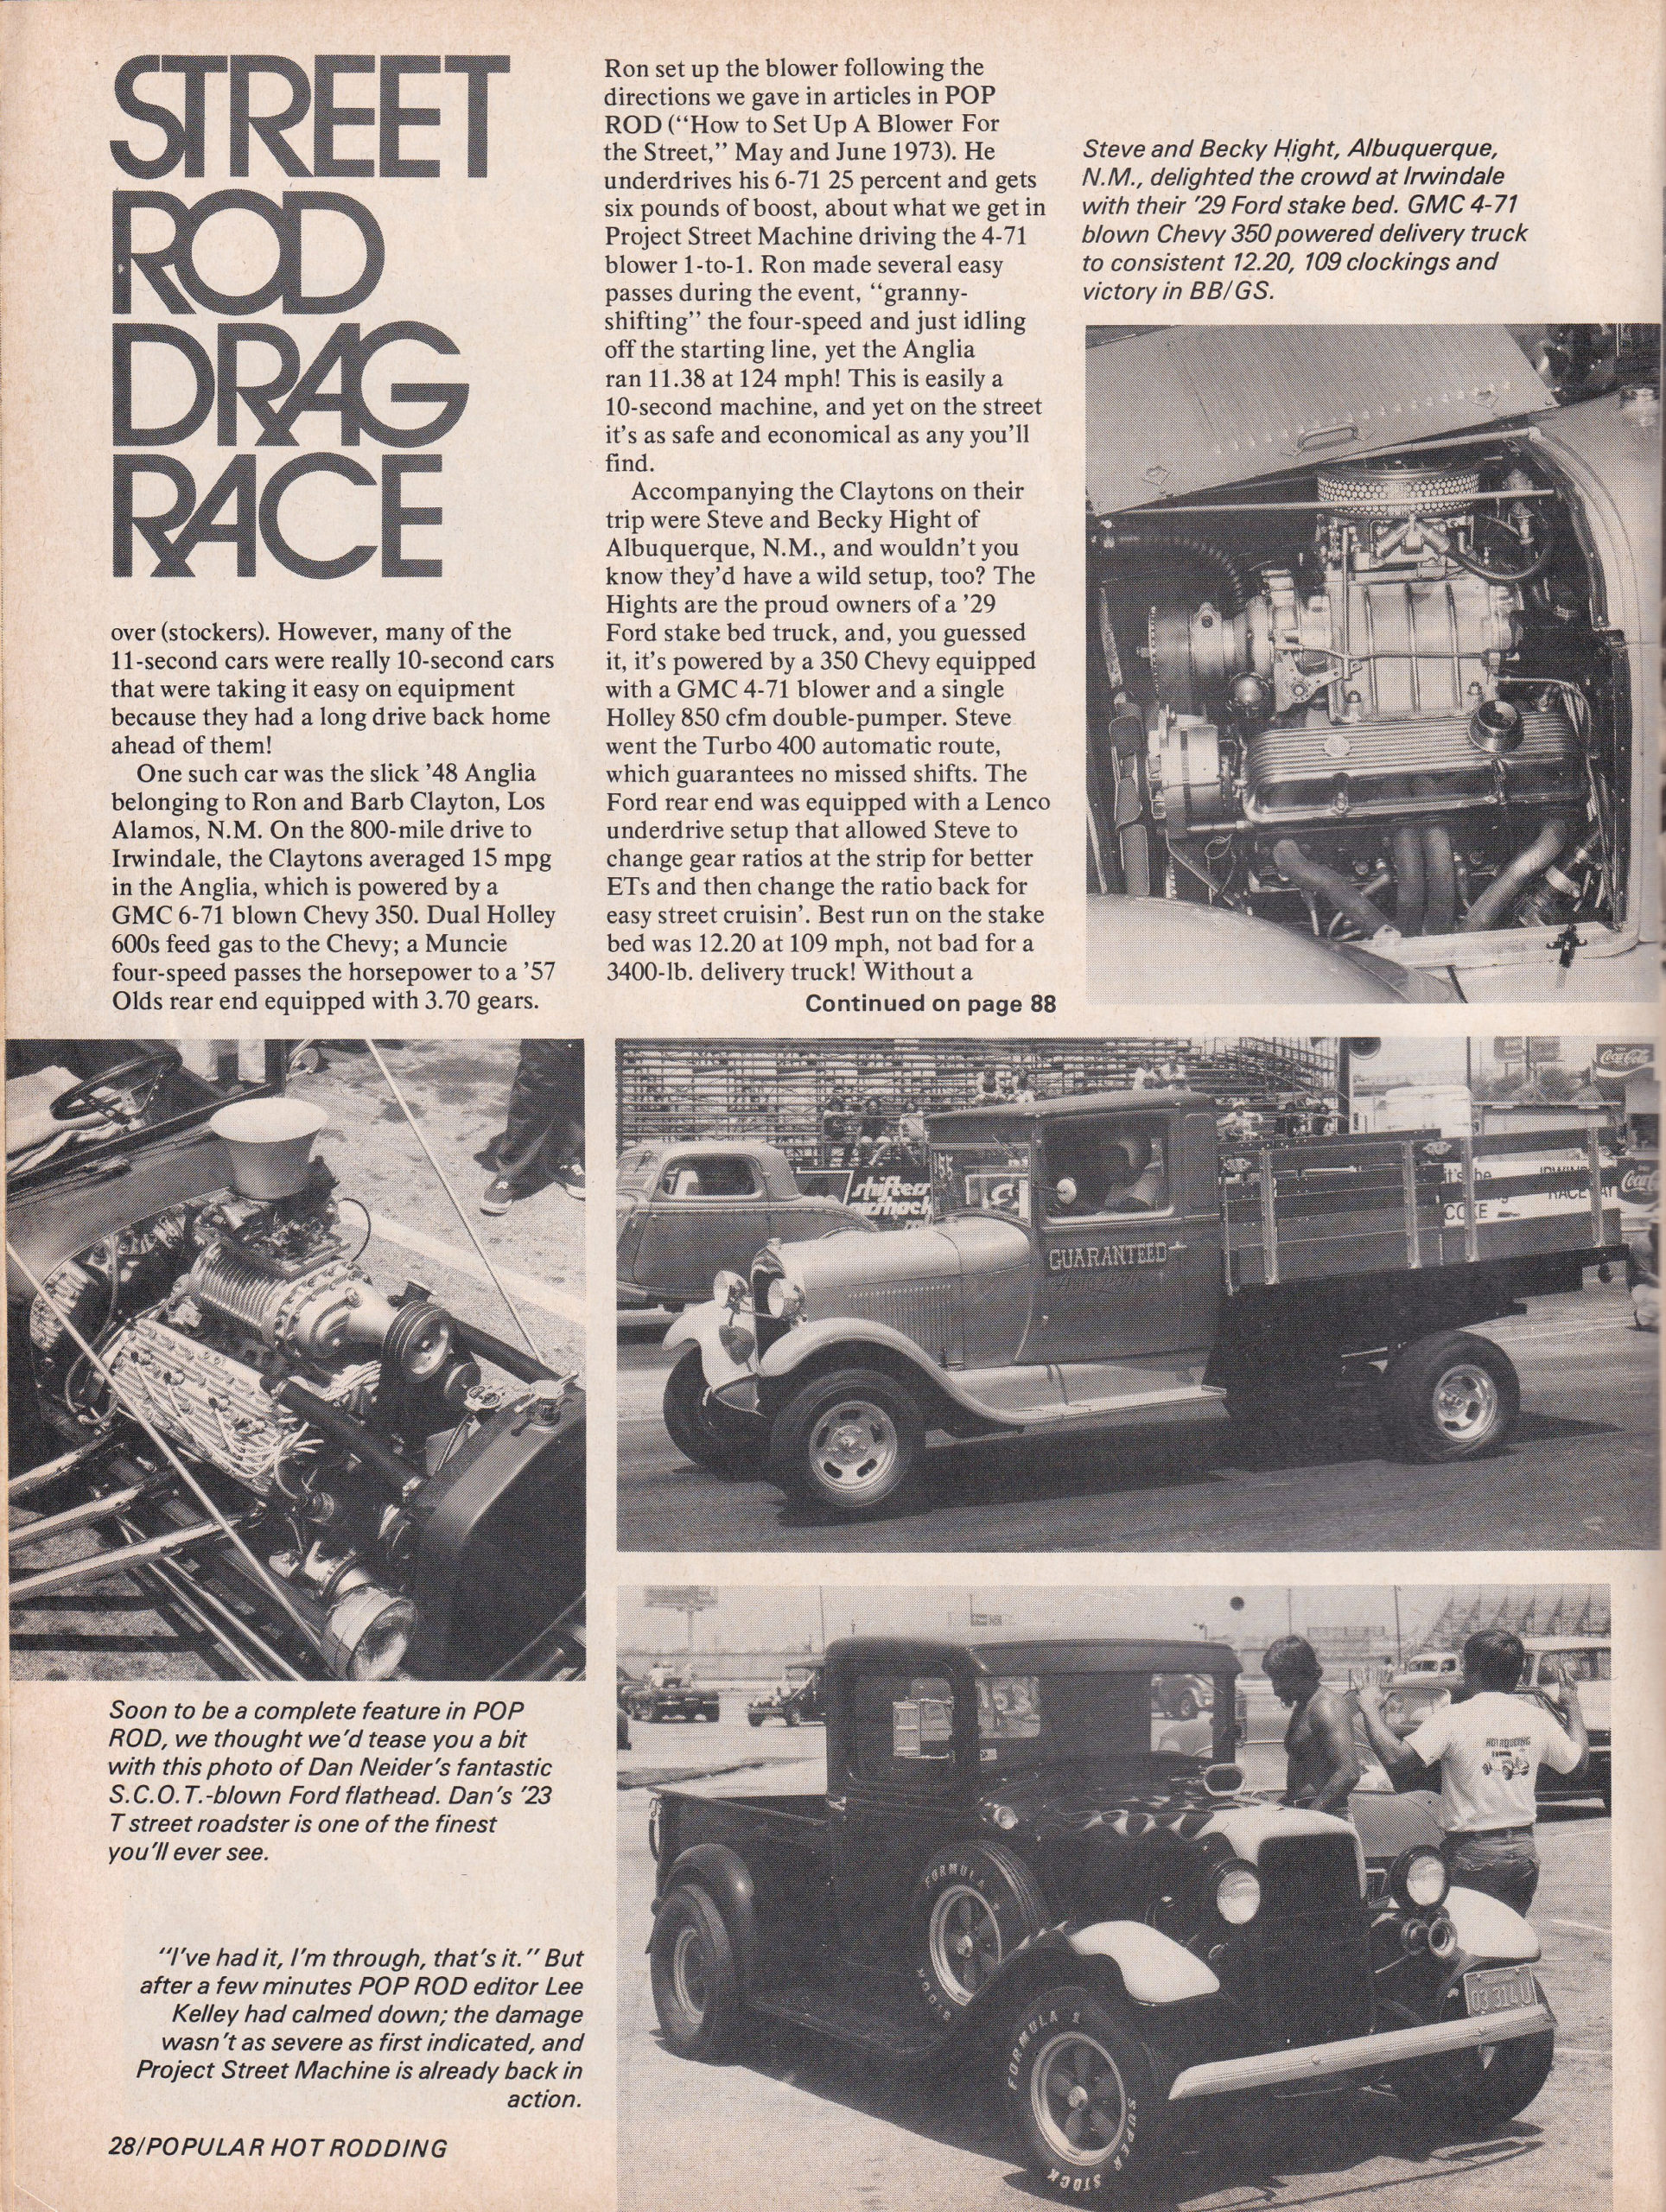 Street Rod Drag Race section from October 1975 issue of Popular Hot Rodding, page 3.